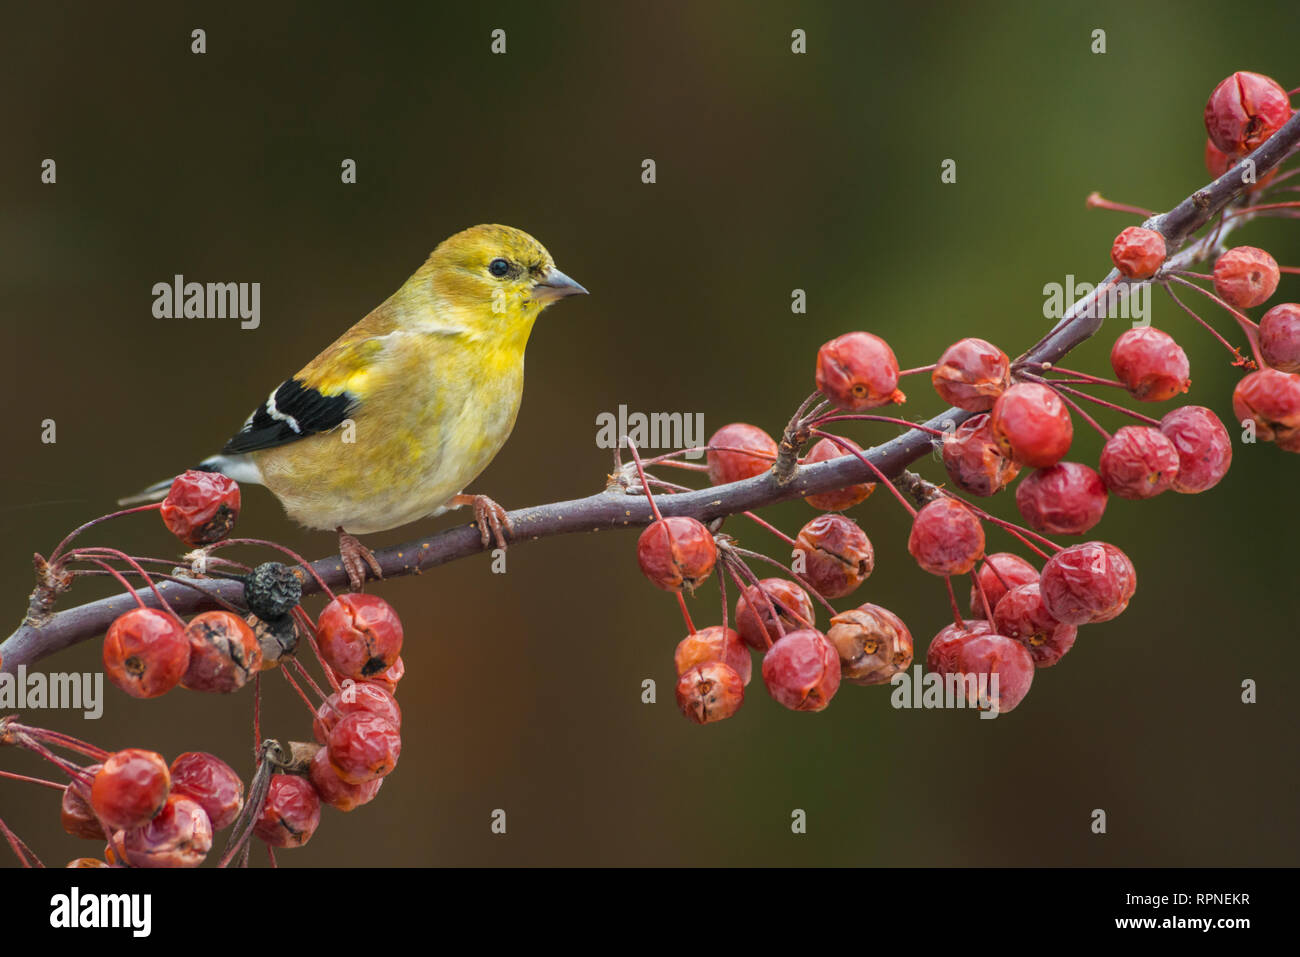 zoology / animals, avian / bird (aves), American Goldfinch (Carduelis tristis) near Thornton, Ontario,, Additional-Rights-Clearance-Info-Not-Available - Stock Image